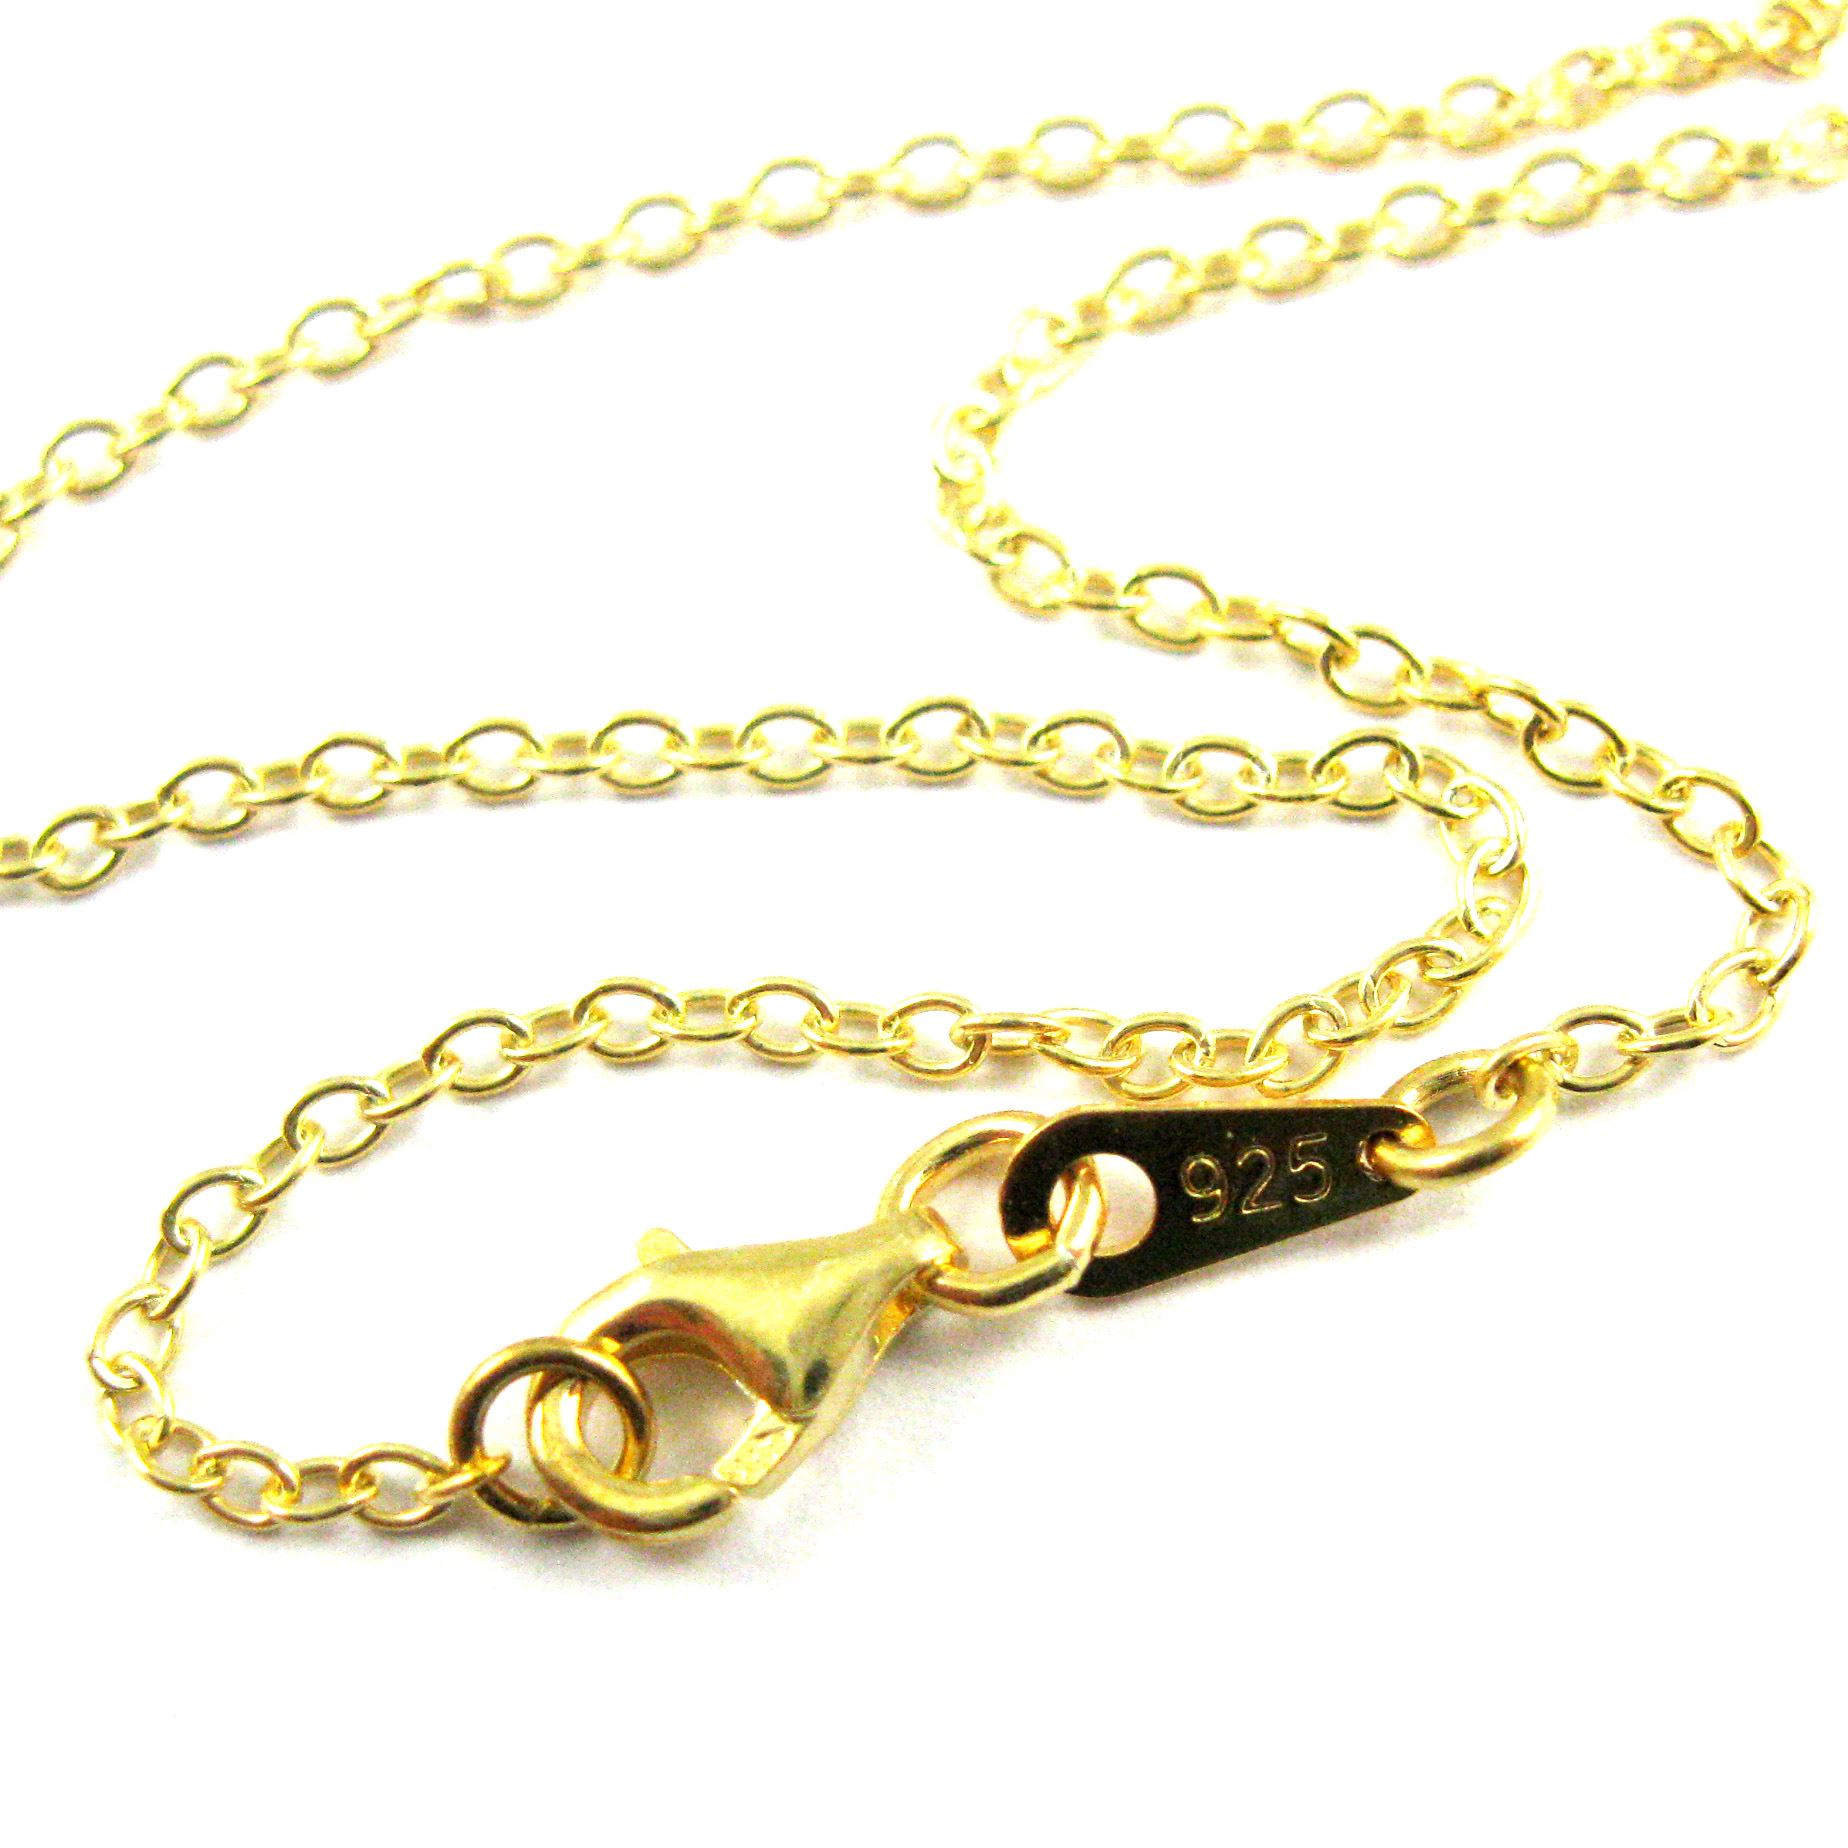 Gold Necklace, Gold Plated Vermeil Sterling Silver Necklace Chain - Long Necklace- 2mm Strong Cable Oval - All Sizes